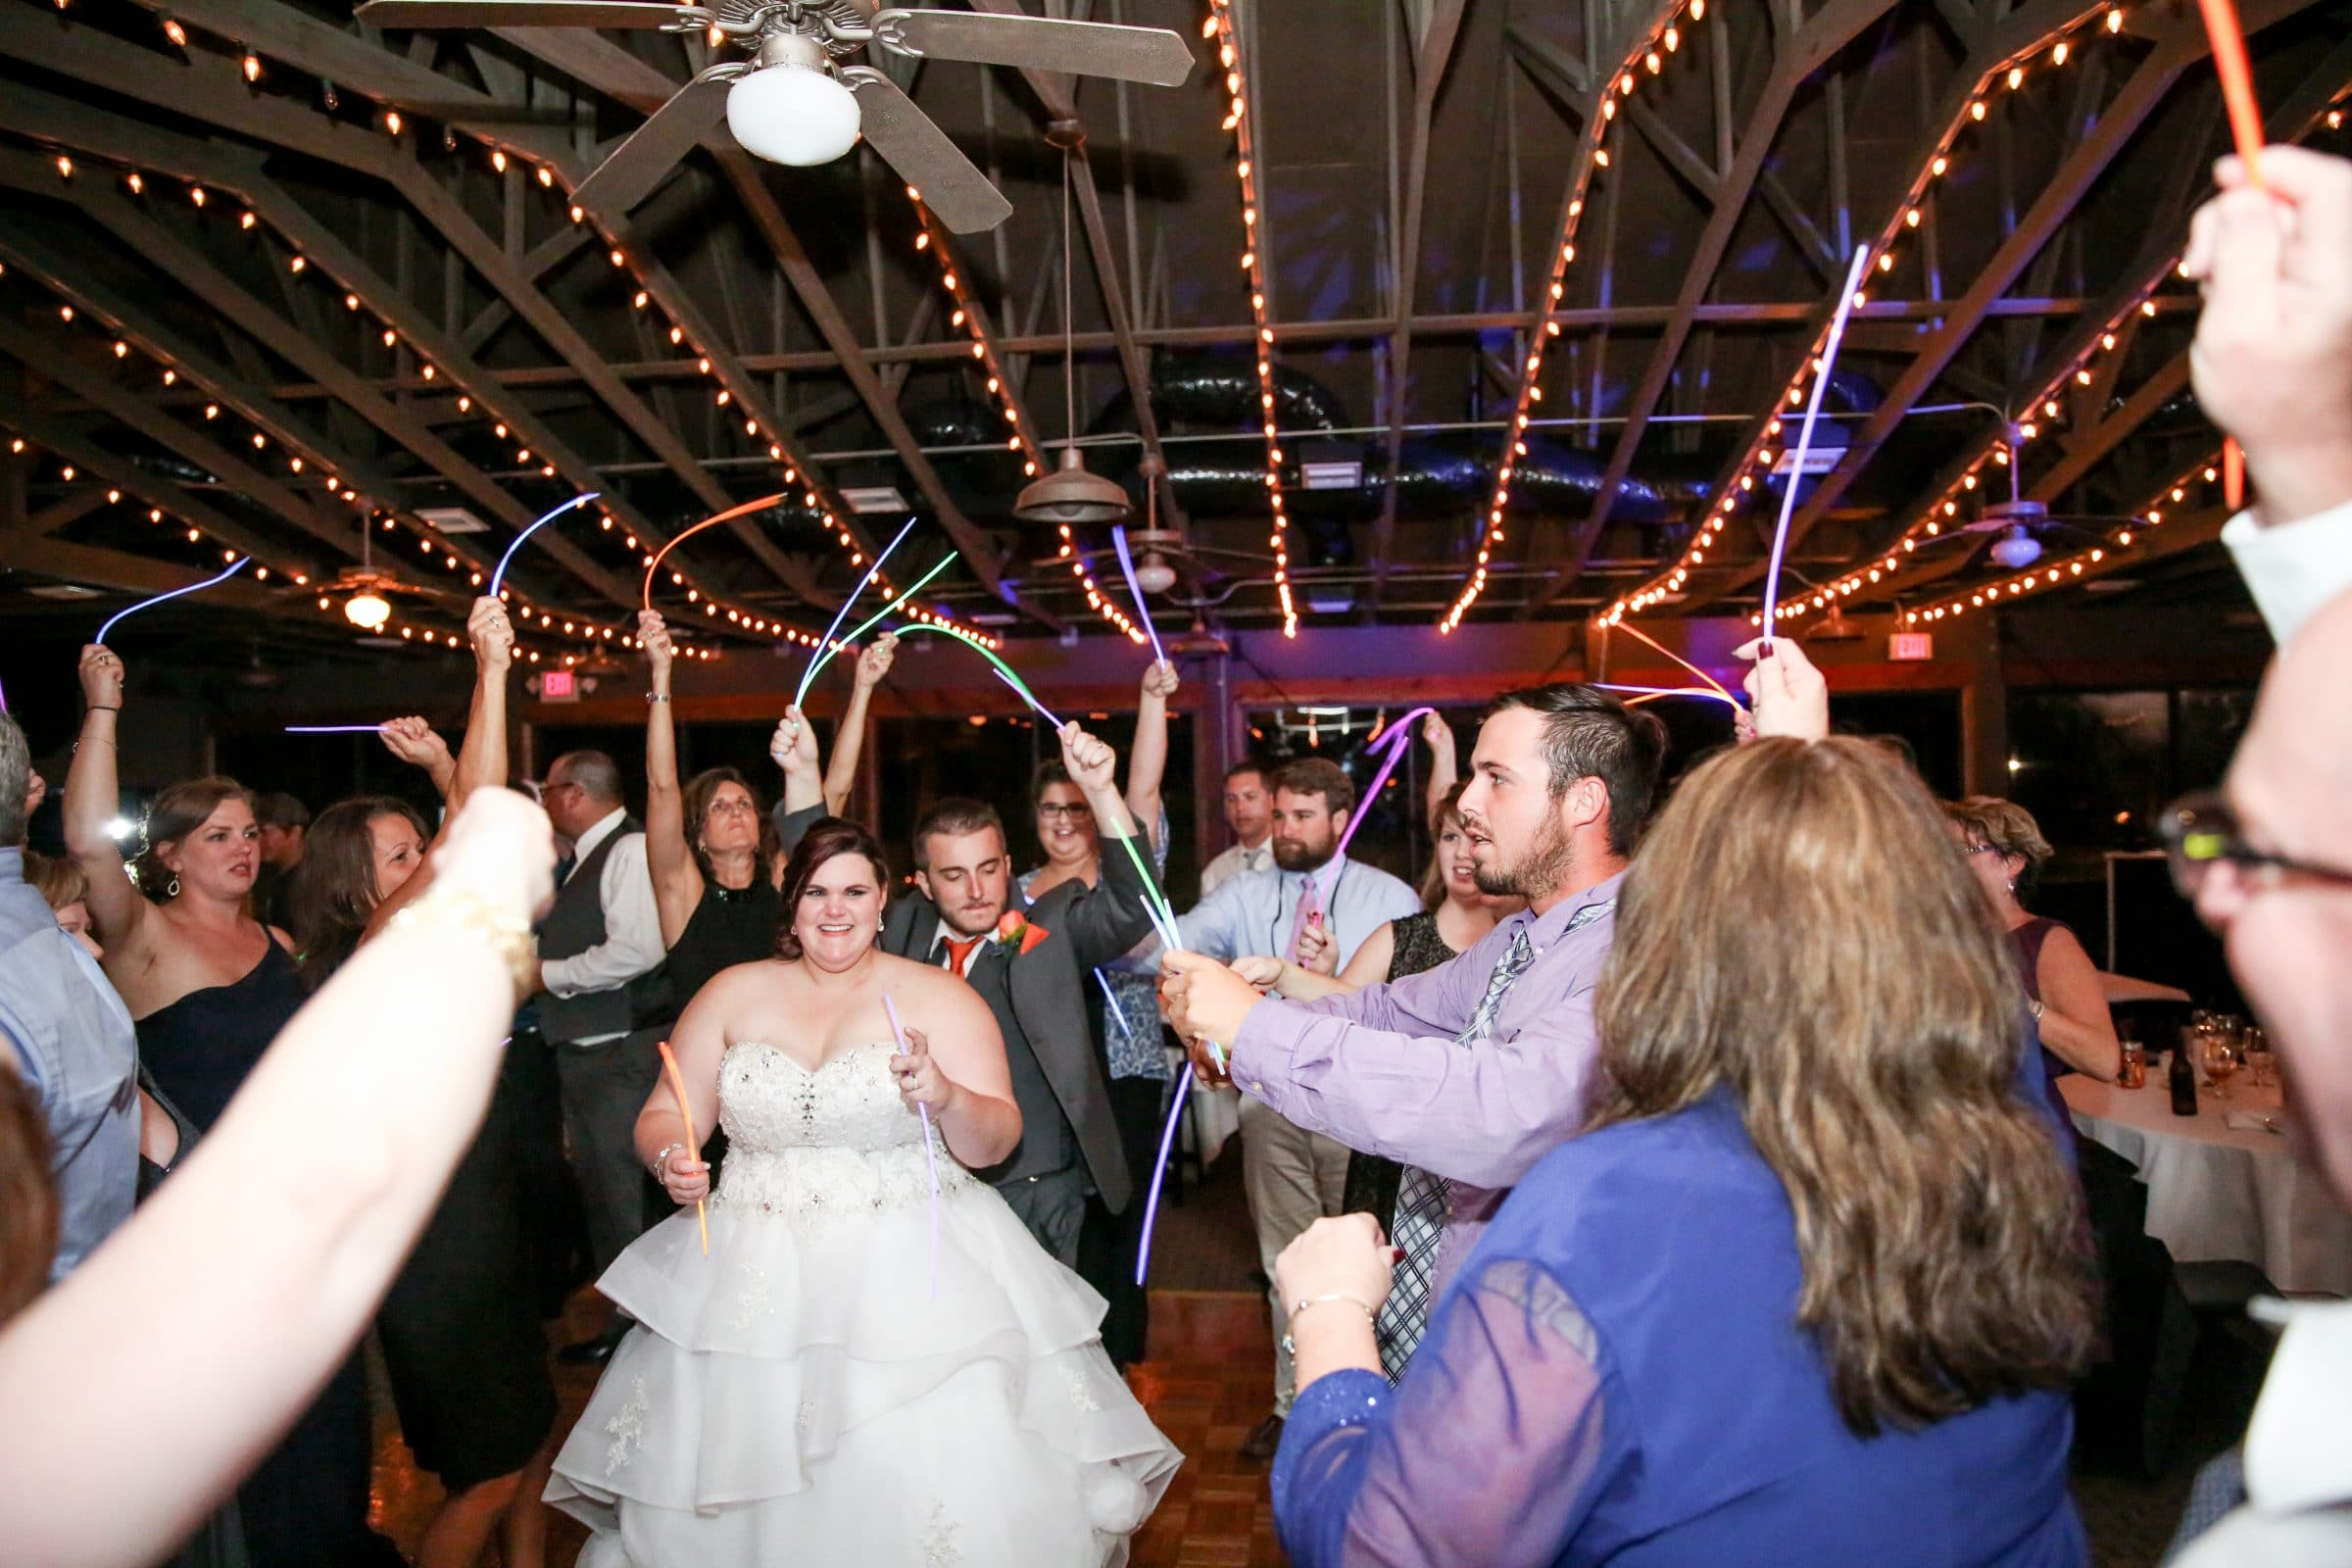 Bride and wedding guests waving glow sticks on the dance floor at Vista Lago